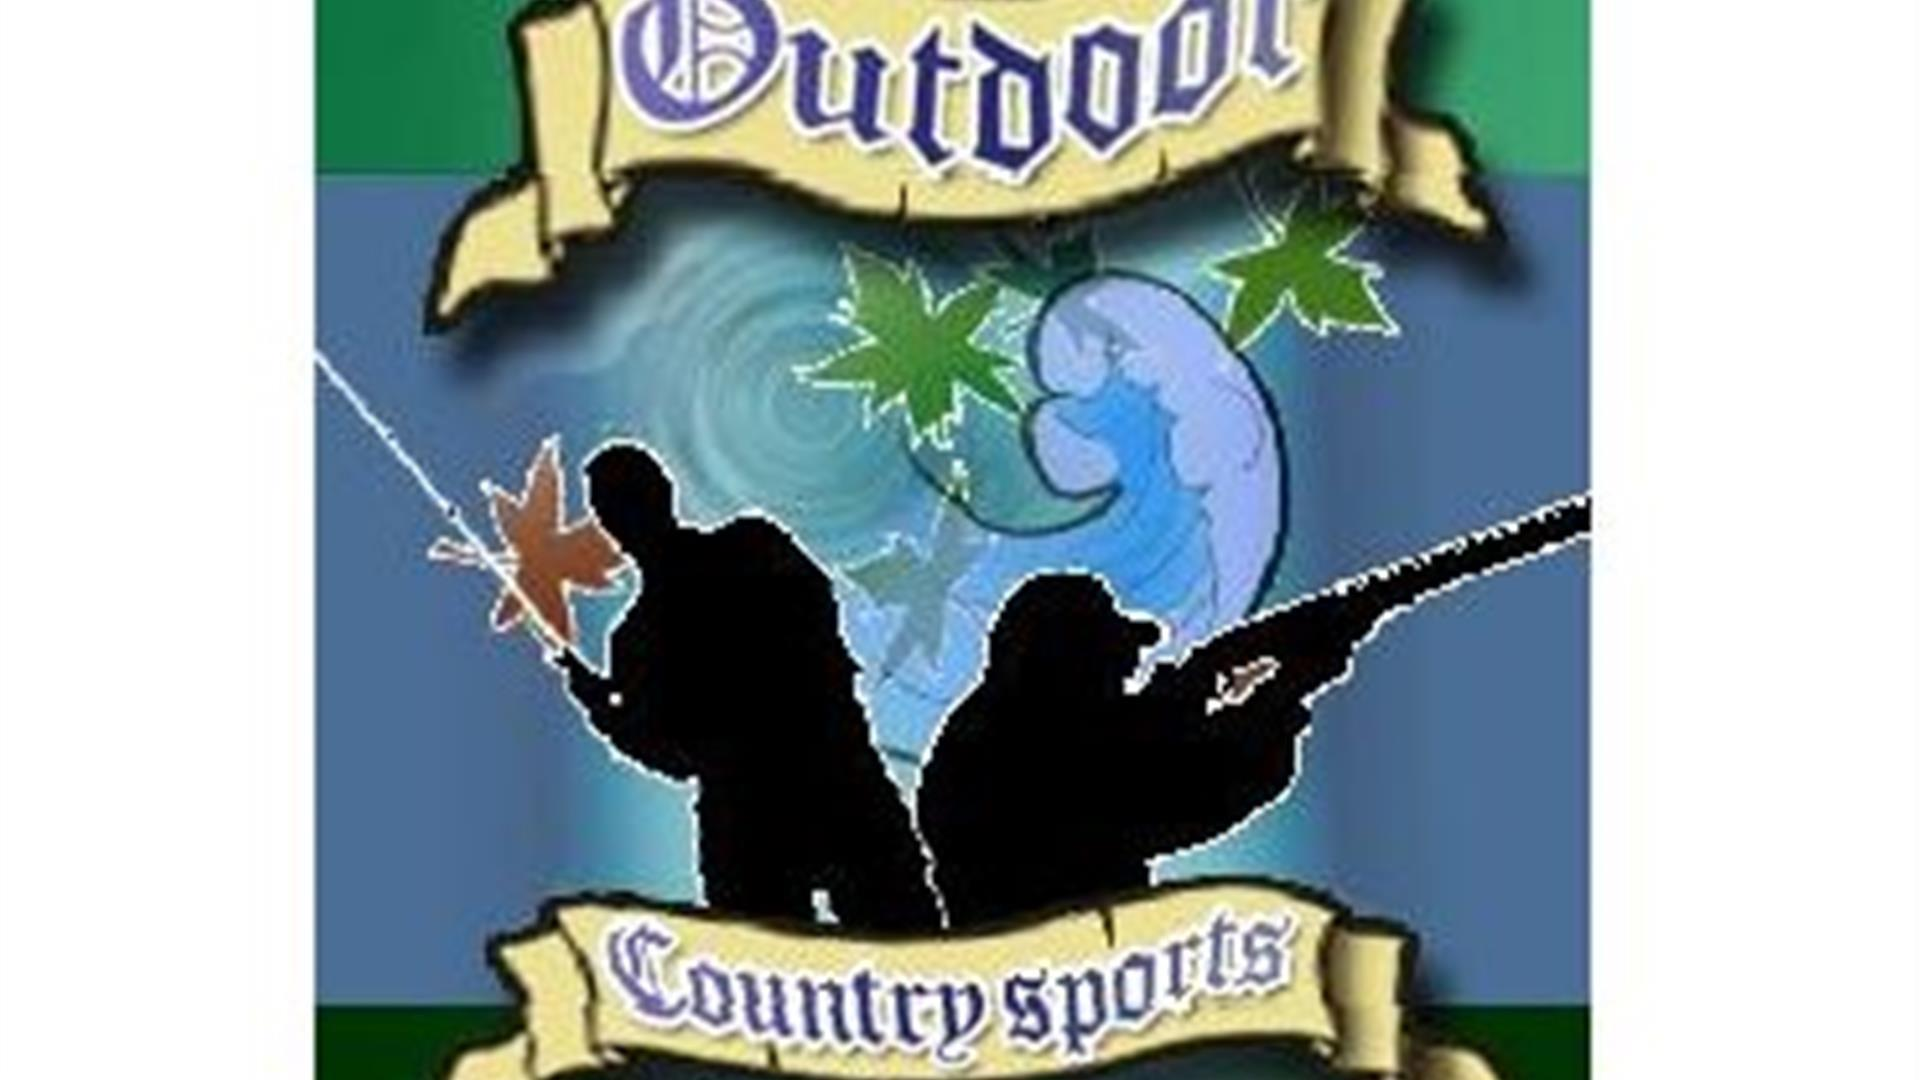 Outdoor and Country Sports